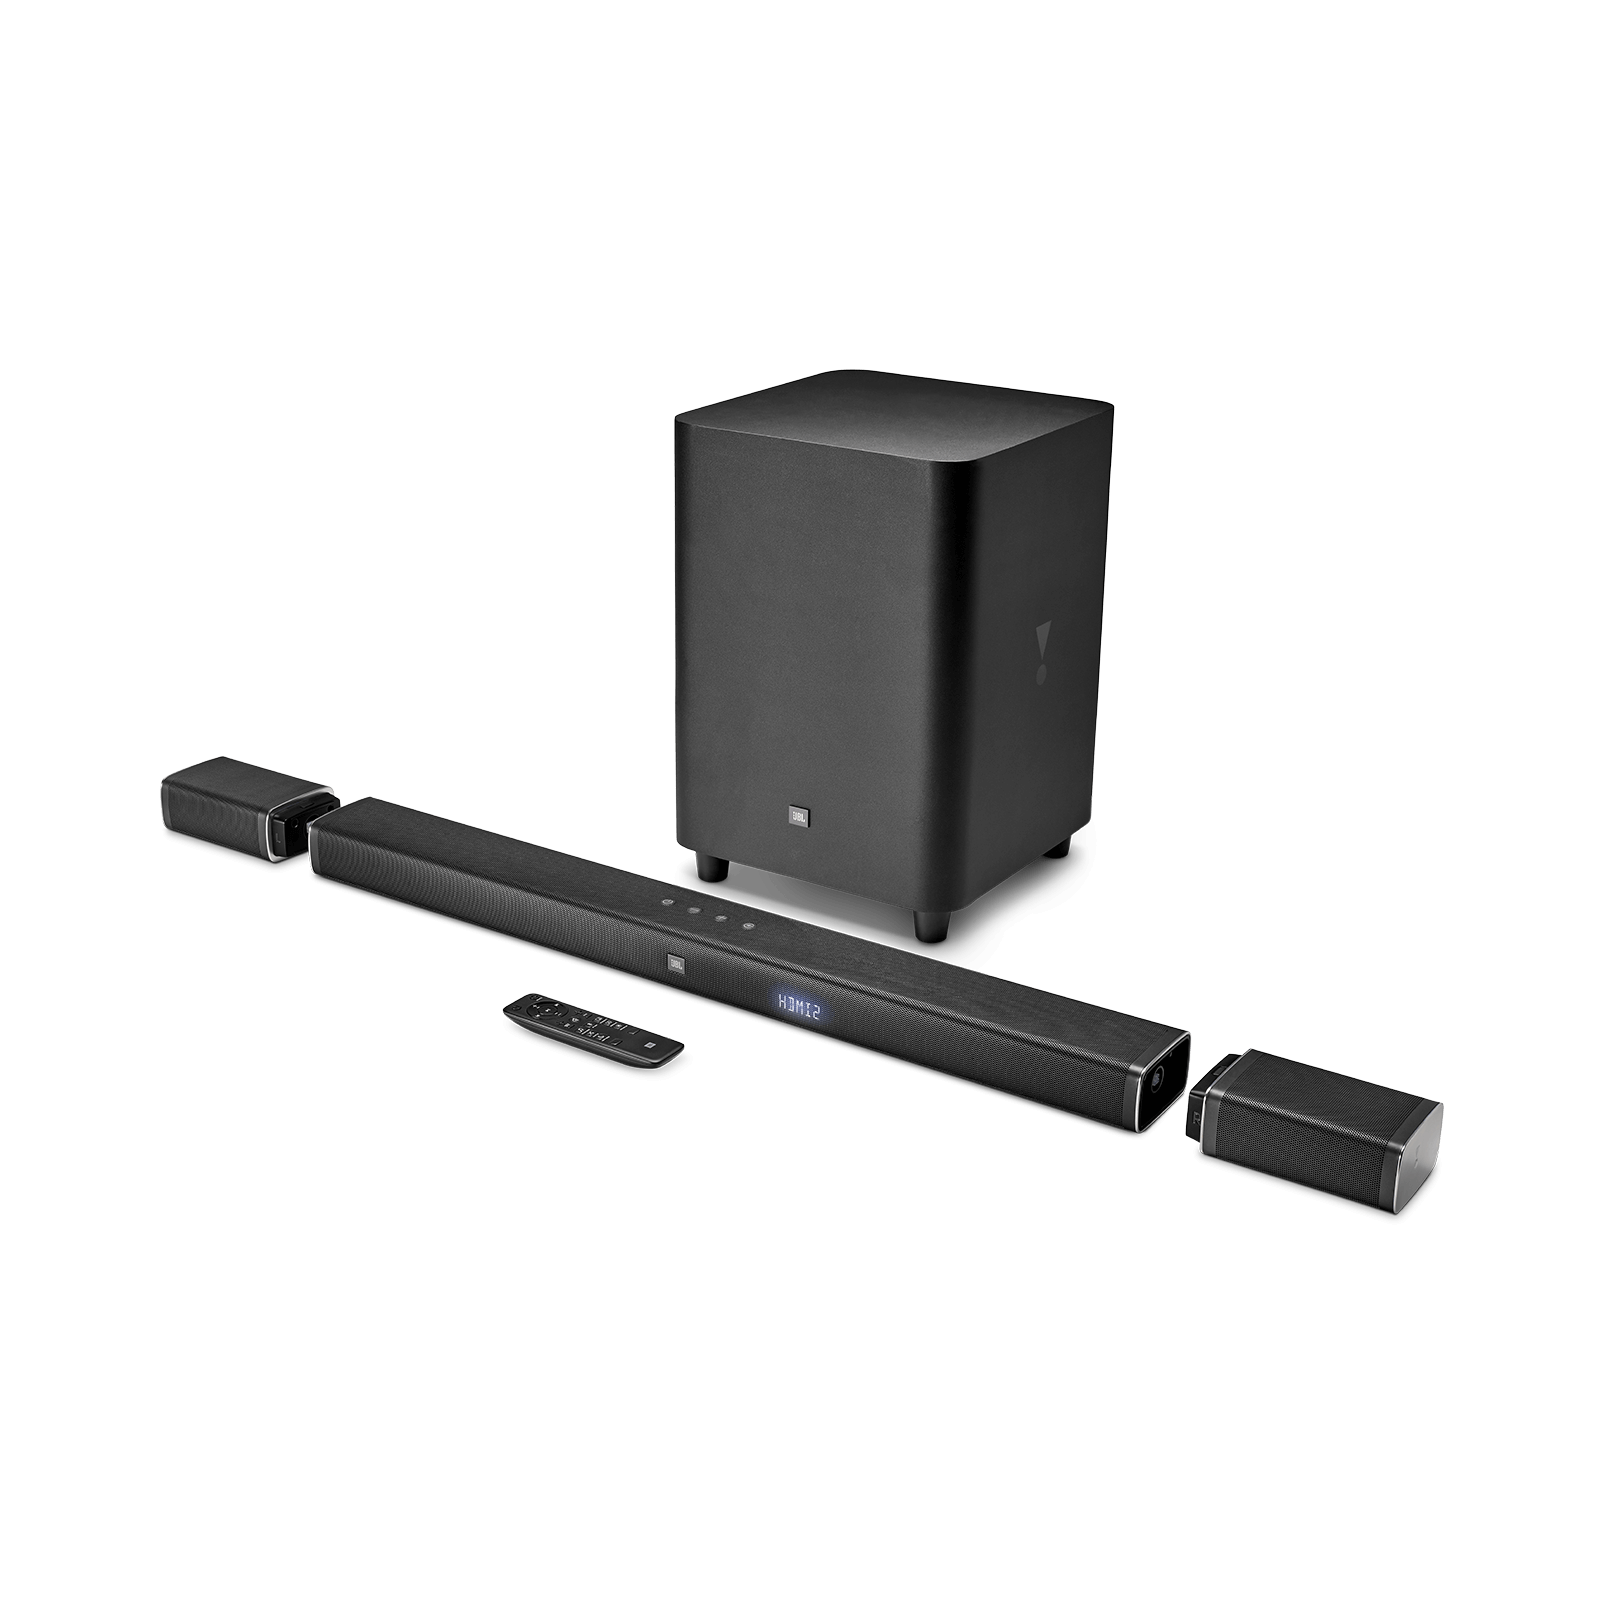 JBL - Barre de son JBL Bar 5.1 - JBL5.1